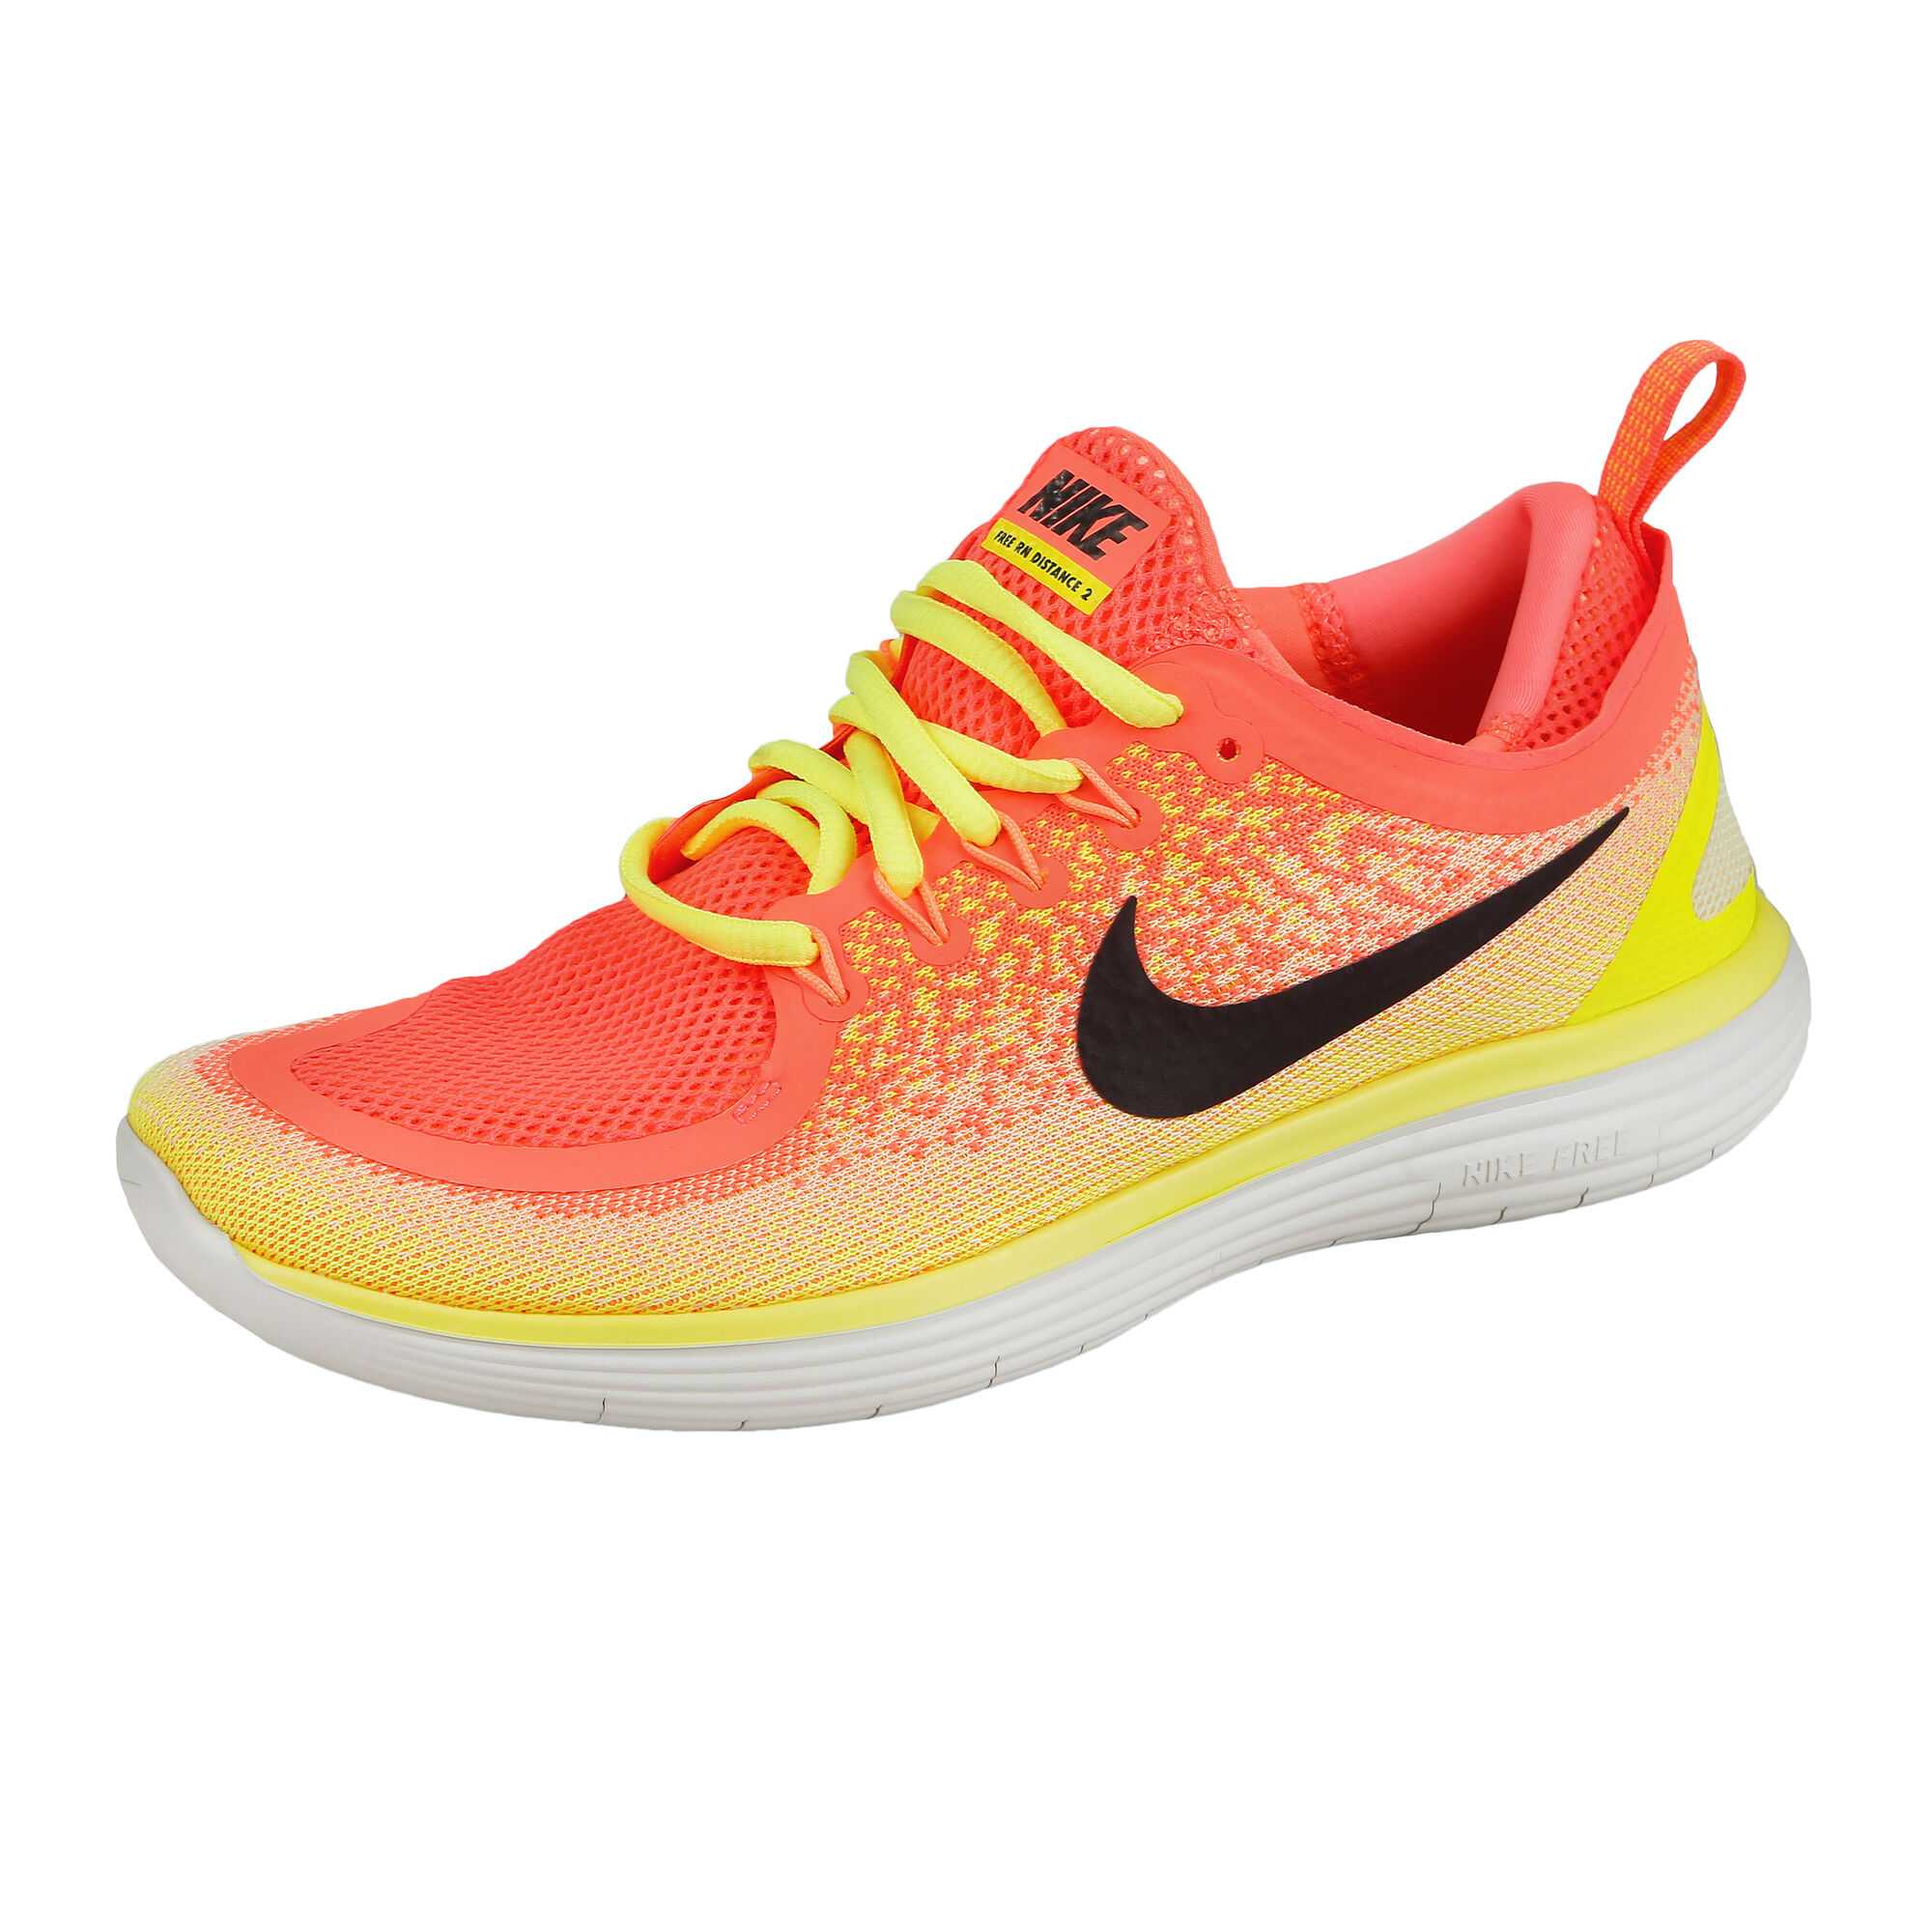 86d3f000bbdb56 Nike Free RN Distance 2 Natural-Running Schuh Damen - Orange